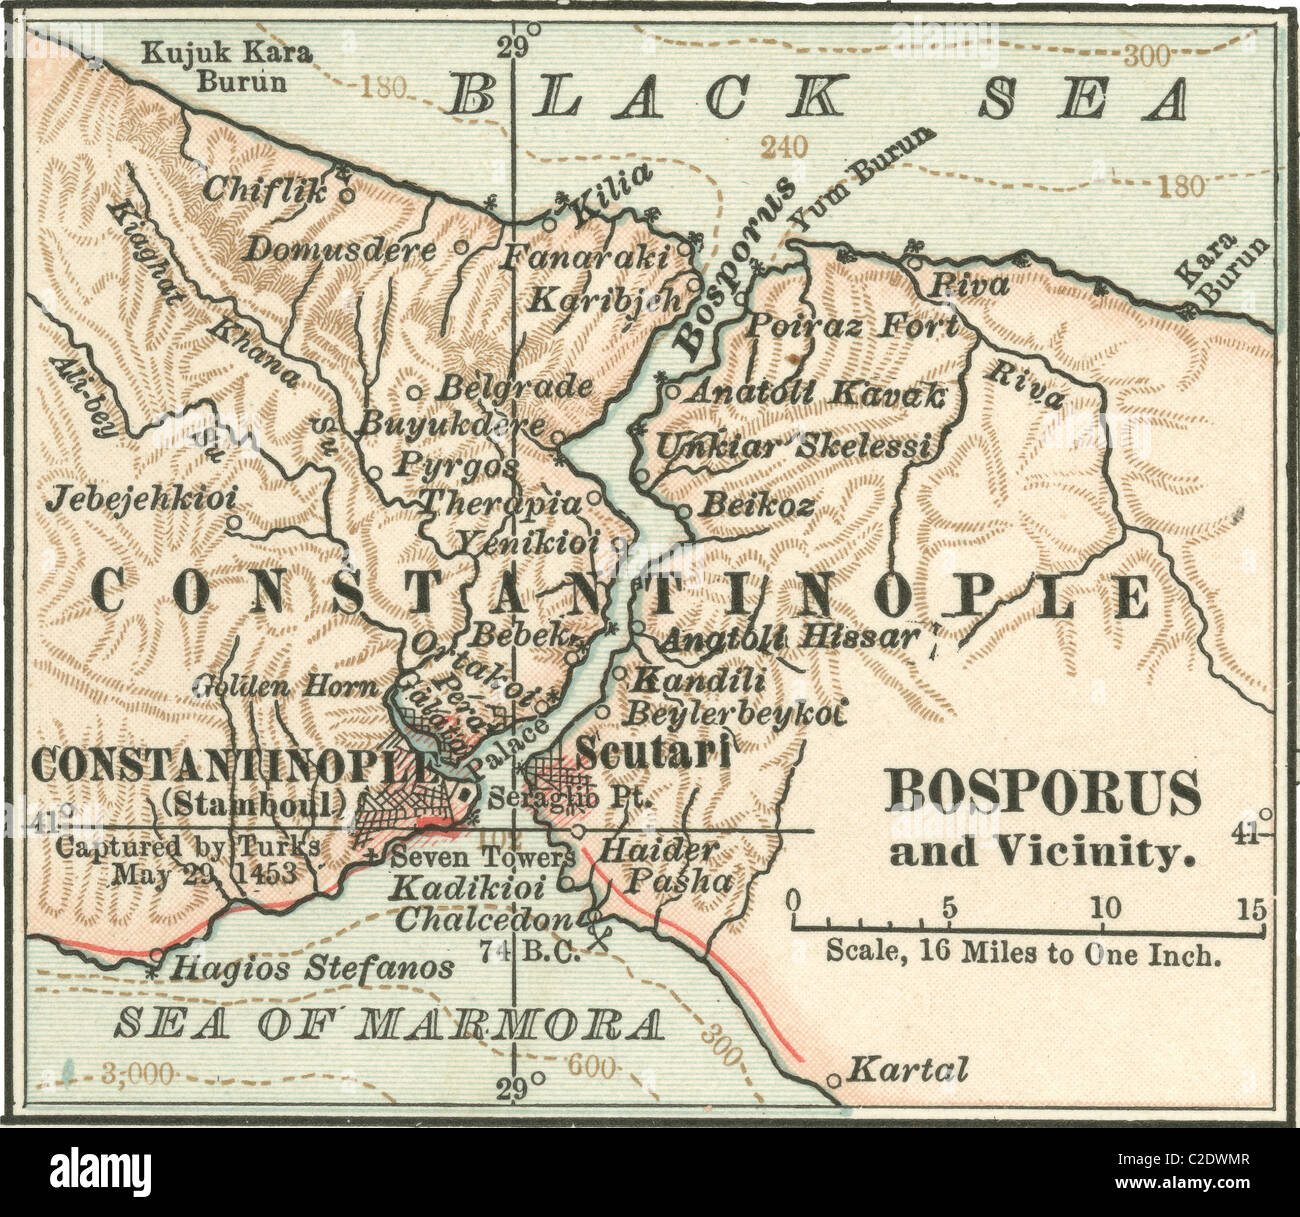 Constantinople Map Stock Photos & Constantinople Map Stock Images ...